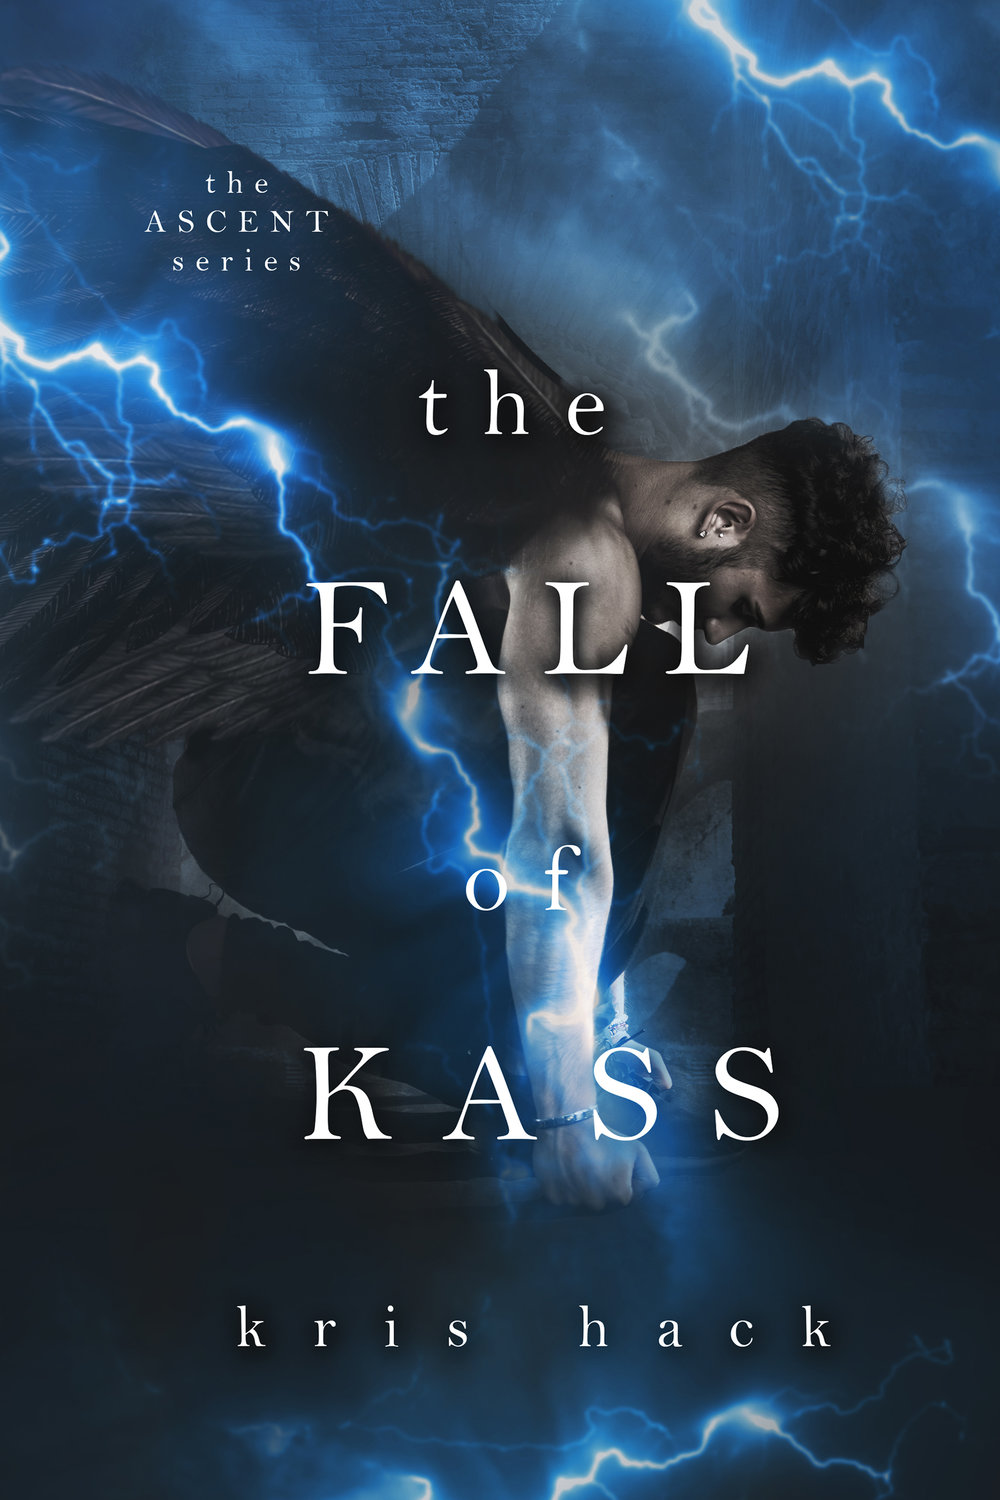 The Fall of Kass - The pain is unbearable. The voices are worse. I know it's affecting her, I can see it in her eyes every time I look at her. We've been on this journey for weeks with no relief in sight. We haven't had a real conversation since before that first strike of lightning, and I constantly miss what we could have become. There's only one thing I can do to make it all go away. To ensure that I can once again be the man that she needs, the man that she loves. I have to fall.The apocalypse wasn't what I thought it would be. The earth hasn't turned to lava, and ungodly creatures haven't risen from the depths of hell. The angels are fighting the Fallen and increasingly more humans are slain every day. Both sides are multiplying and there's only one side we can choose to be on. The Fallen are evil, but I'm realizing so are the angels. No one can be trusted, and no one is safe.